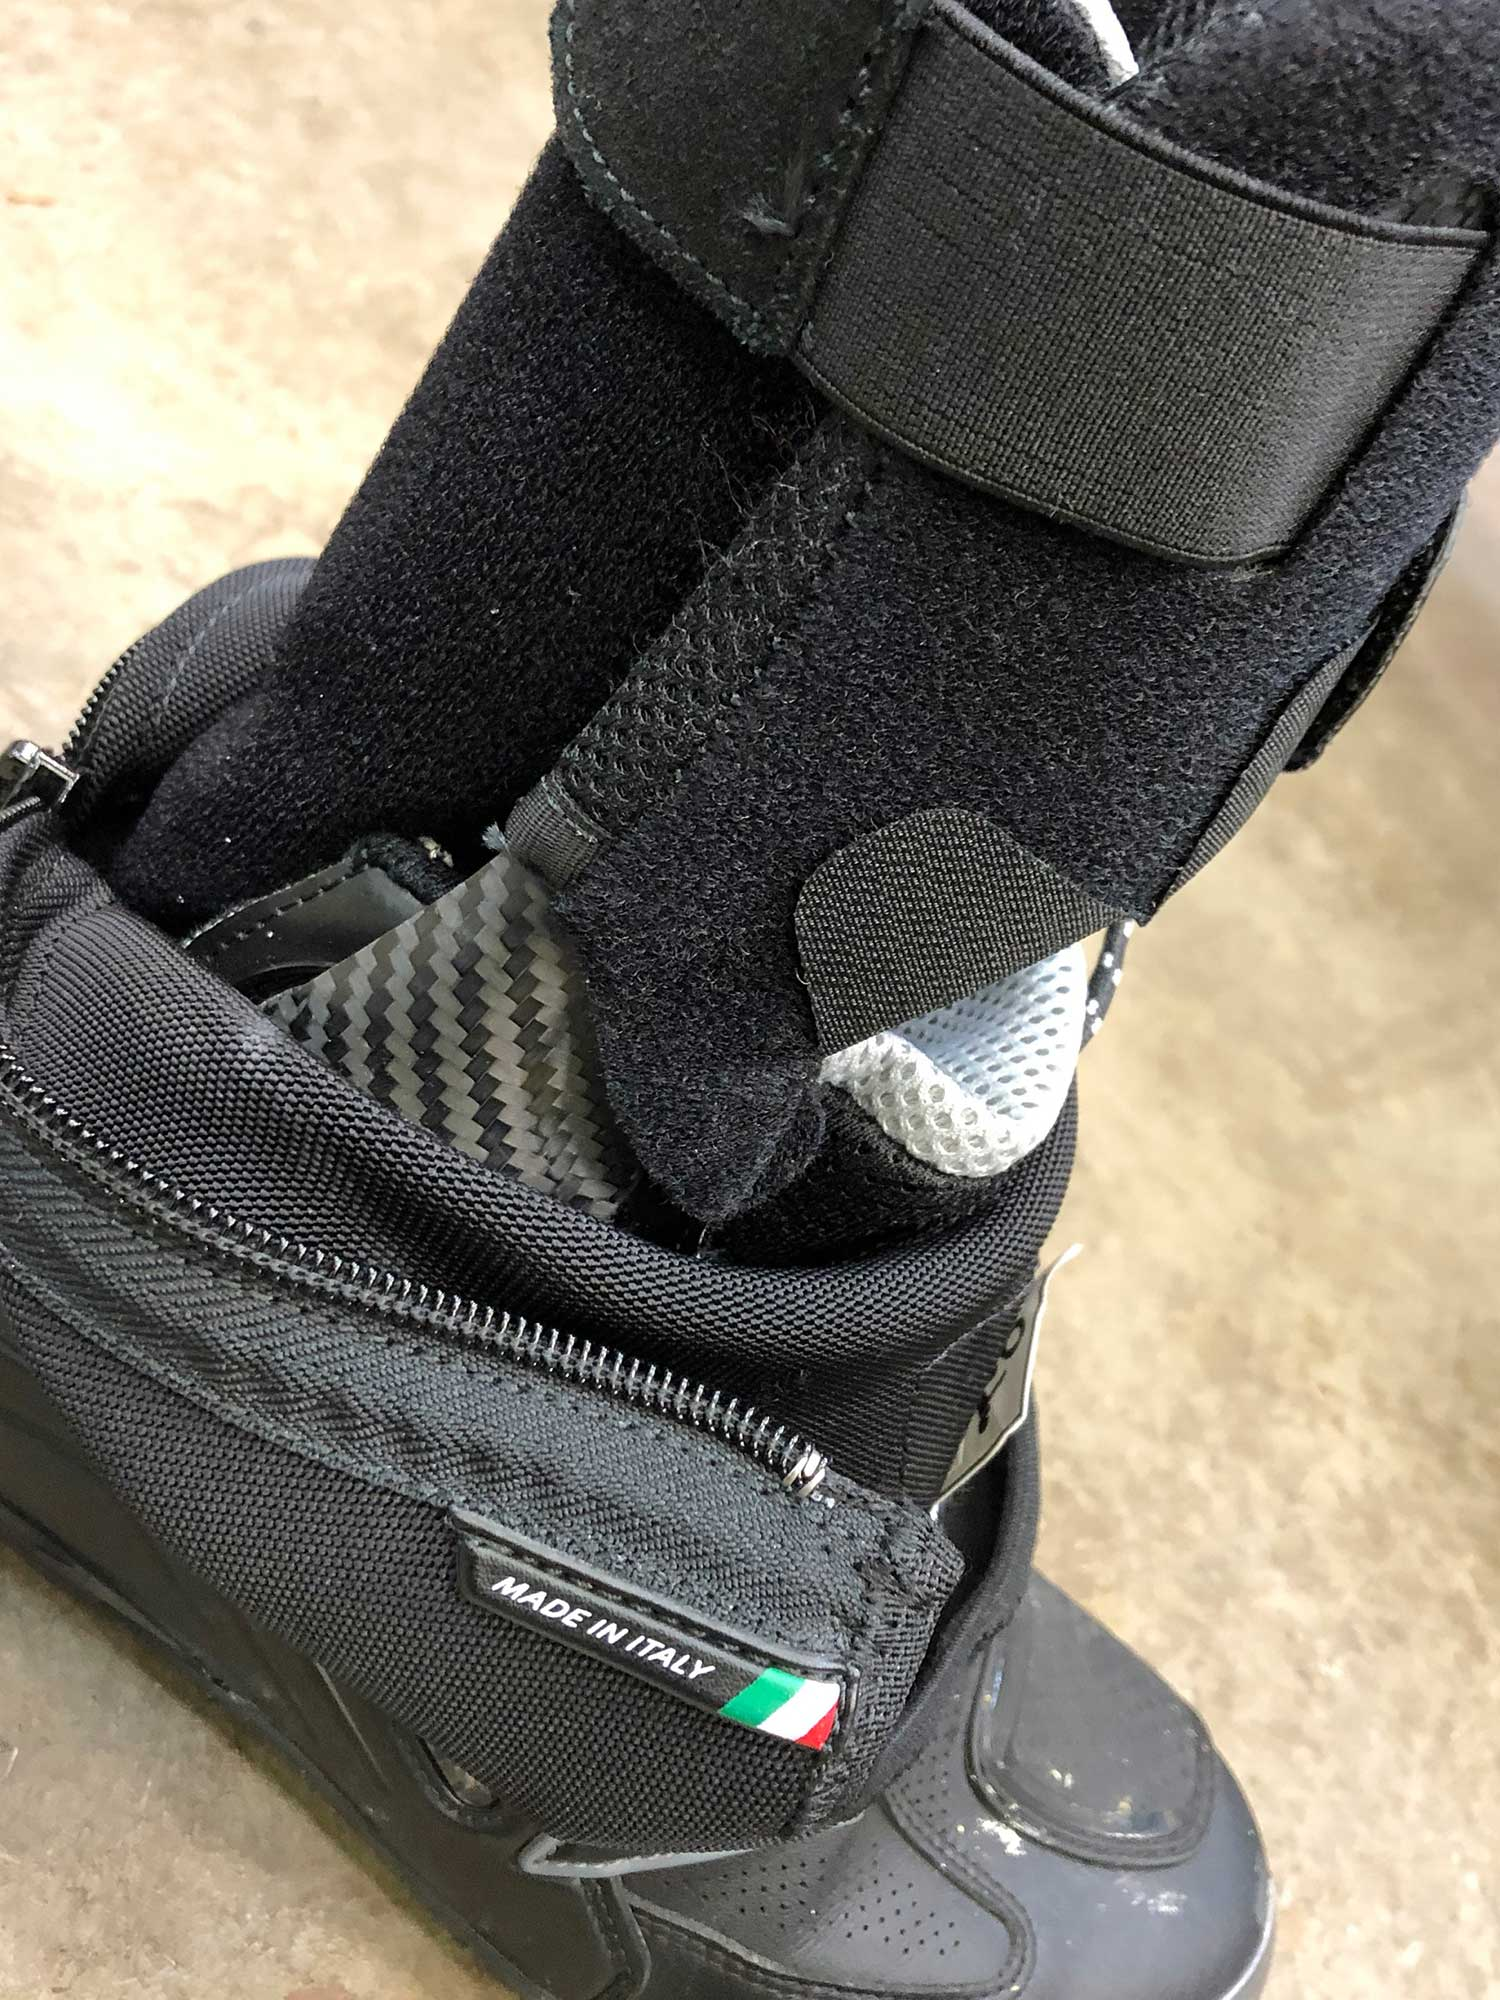 Dainese Axial D1 Boot Review   Cycle World